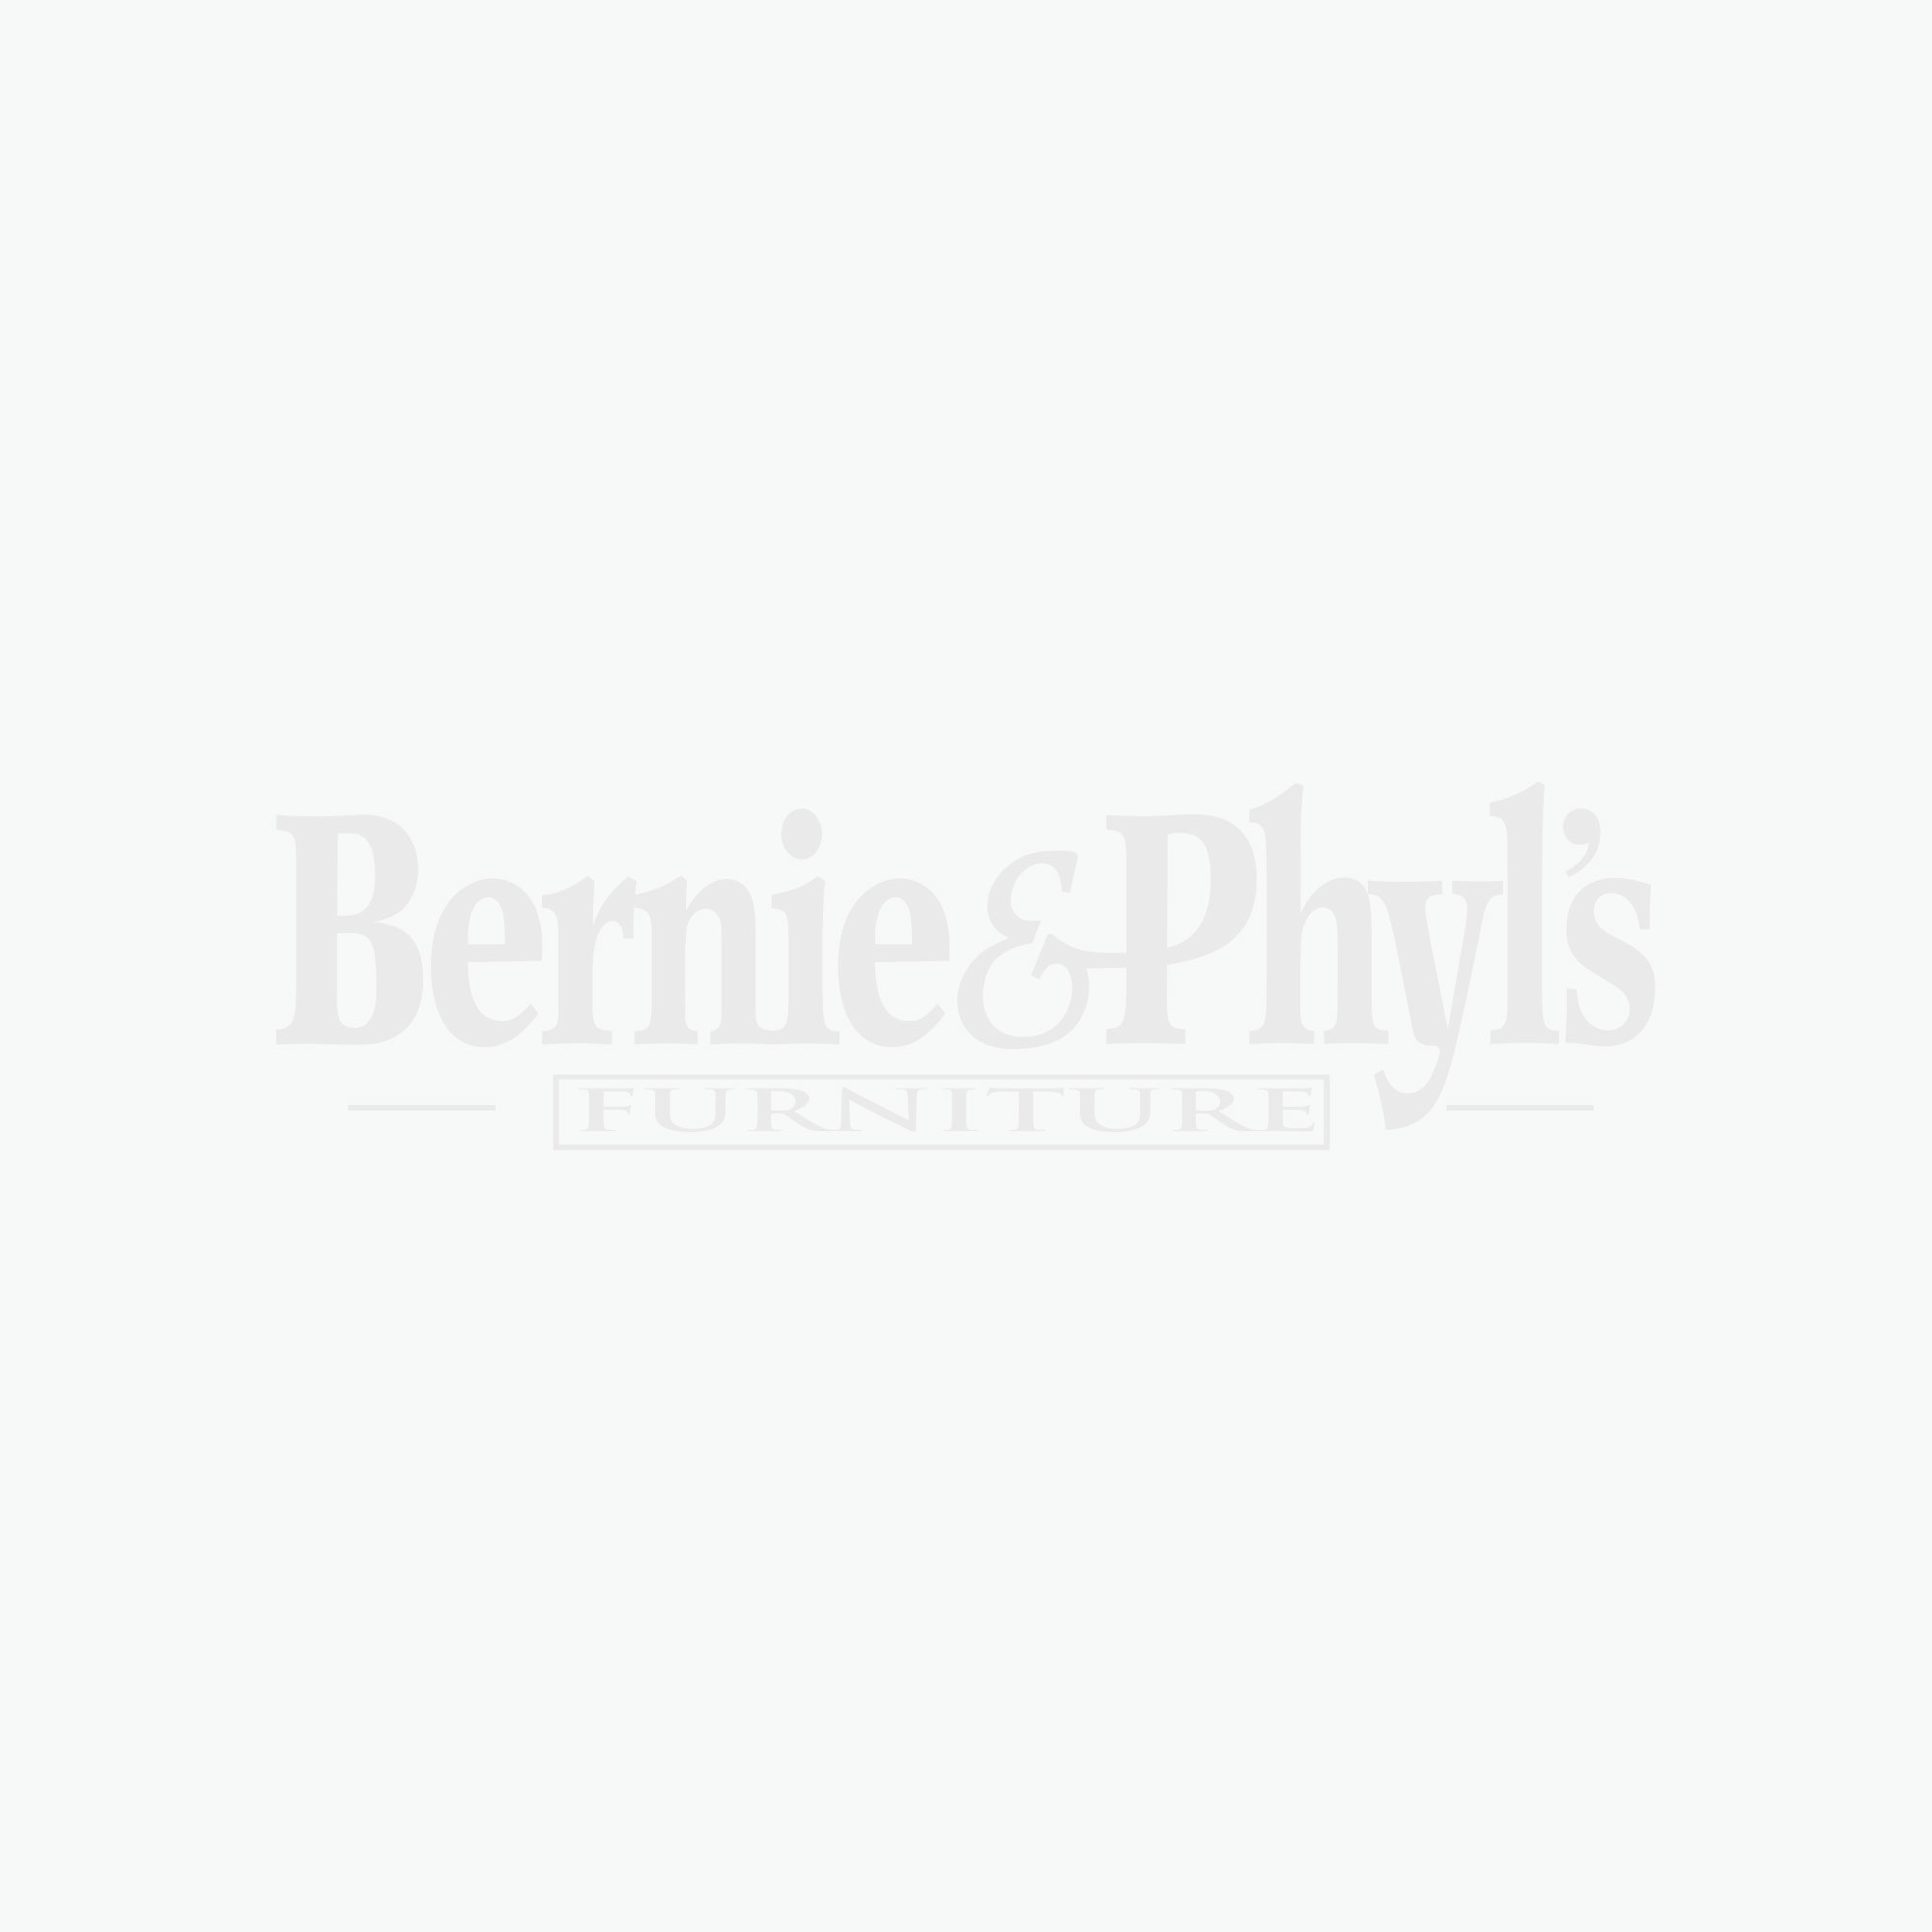 Fresno Dining Room Table Bernie Phyl S Furniture By Warehouse M Furniture